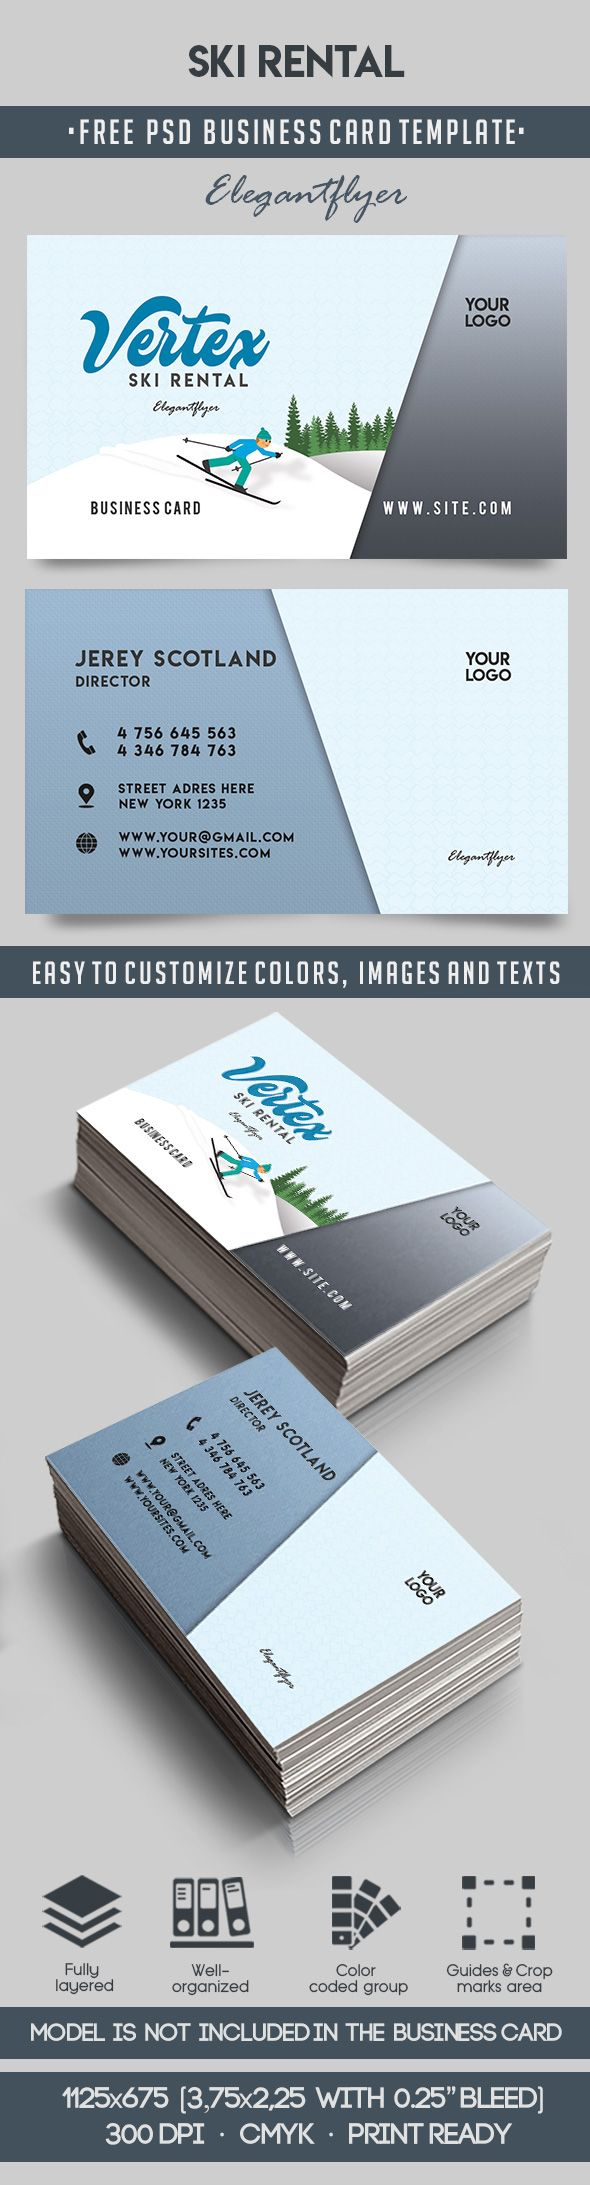 Ski Rental – Free Business Card Templates PSD